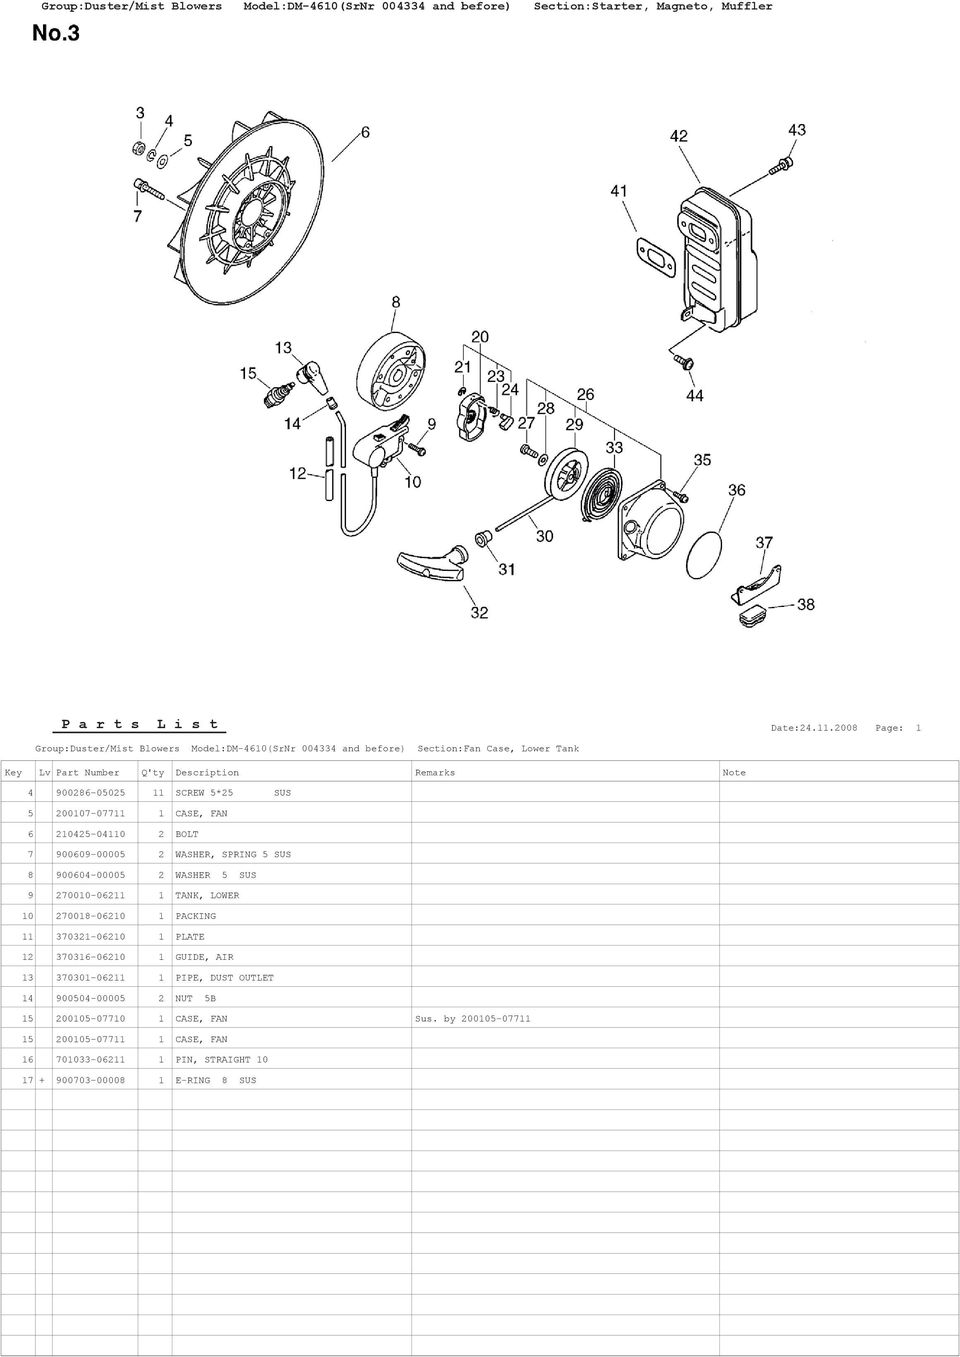 2 WASHER 5 SUS 9 270010-06211 1 TANK, LOWER 10 270018-06210 1 PACKING 11 370321-06210 1 PLATE 12 370316-06210 1 GUIDE, AIR 13 370301-06211 1 PIPE, DUST OUTLET 14